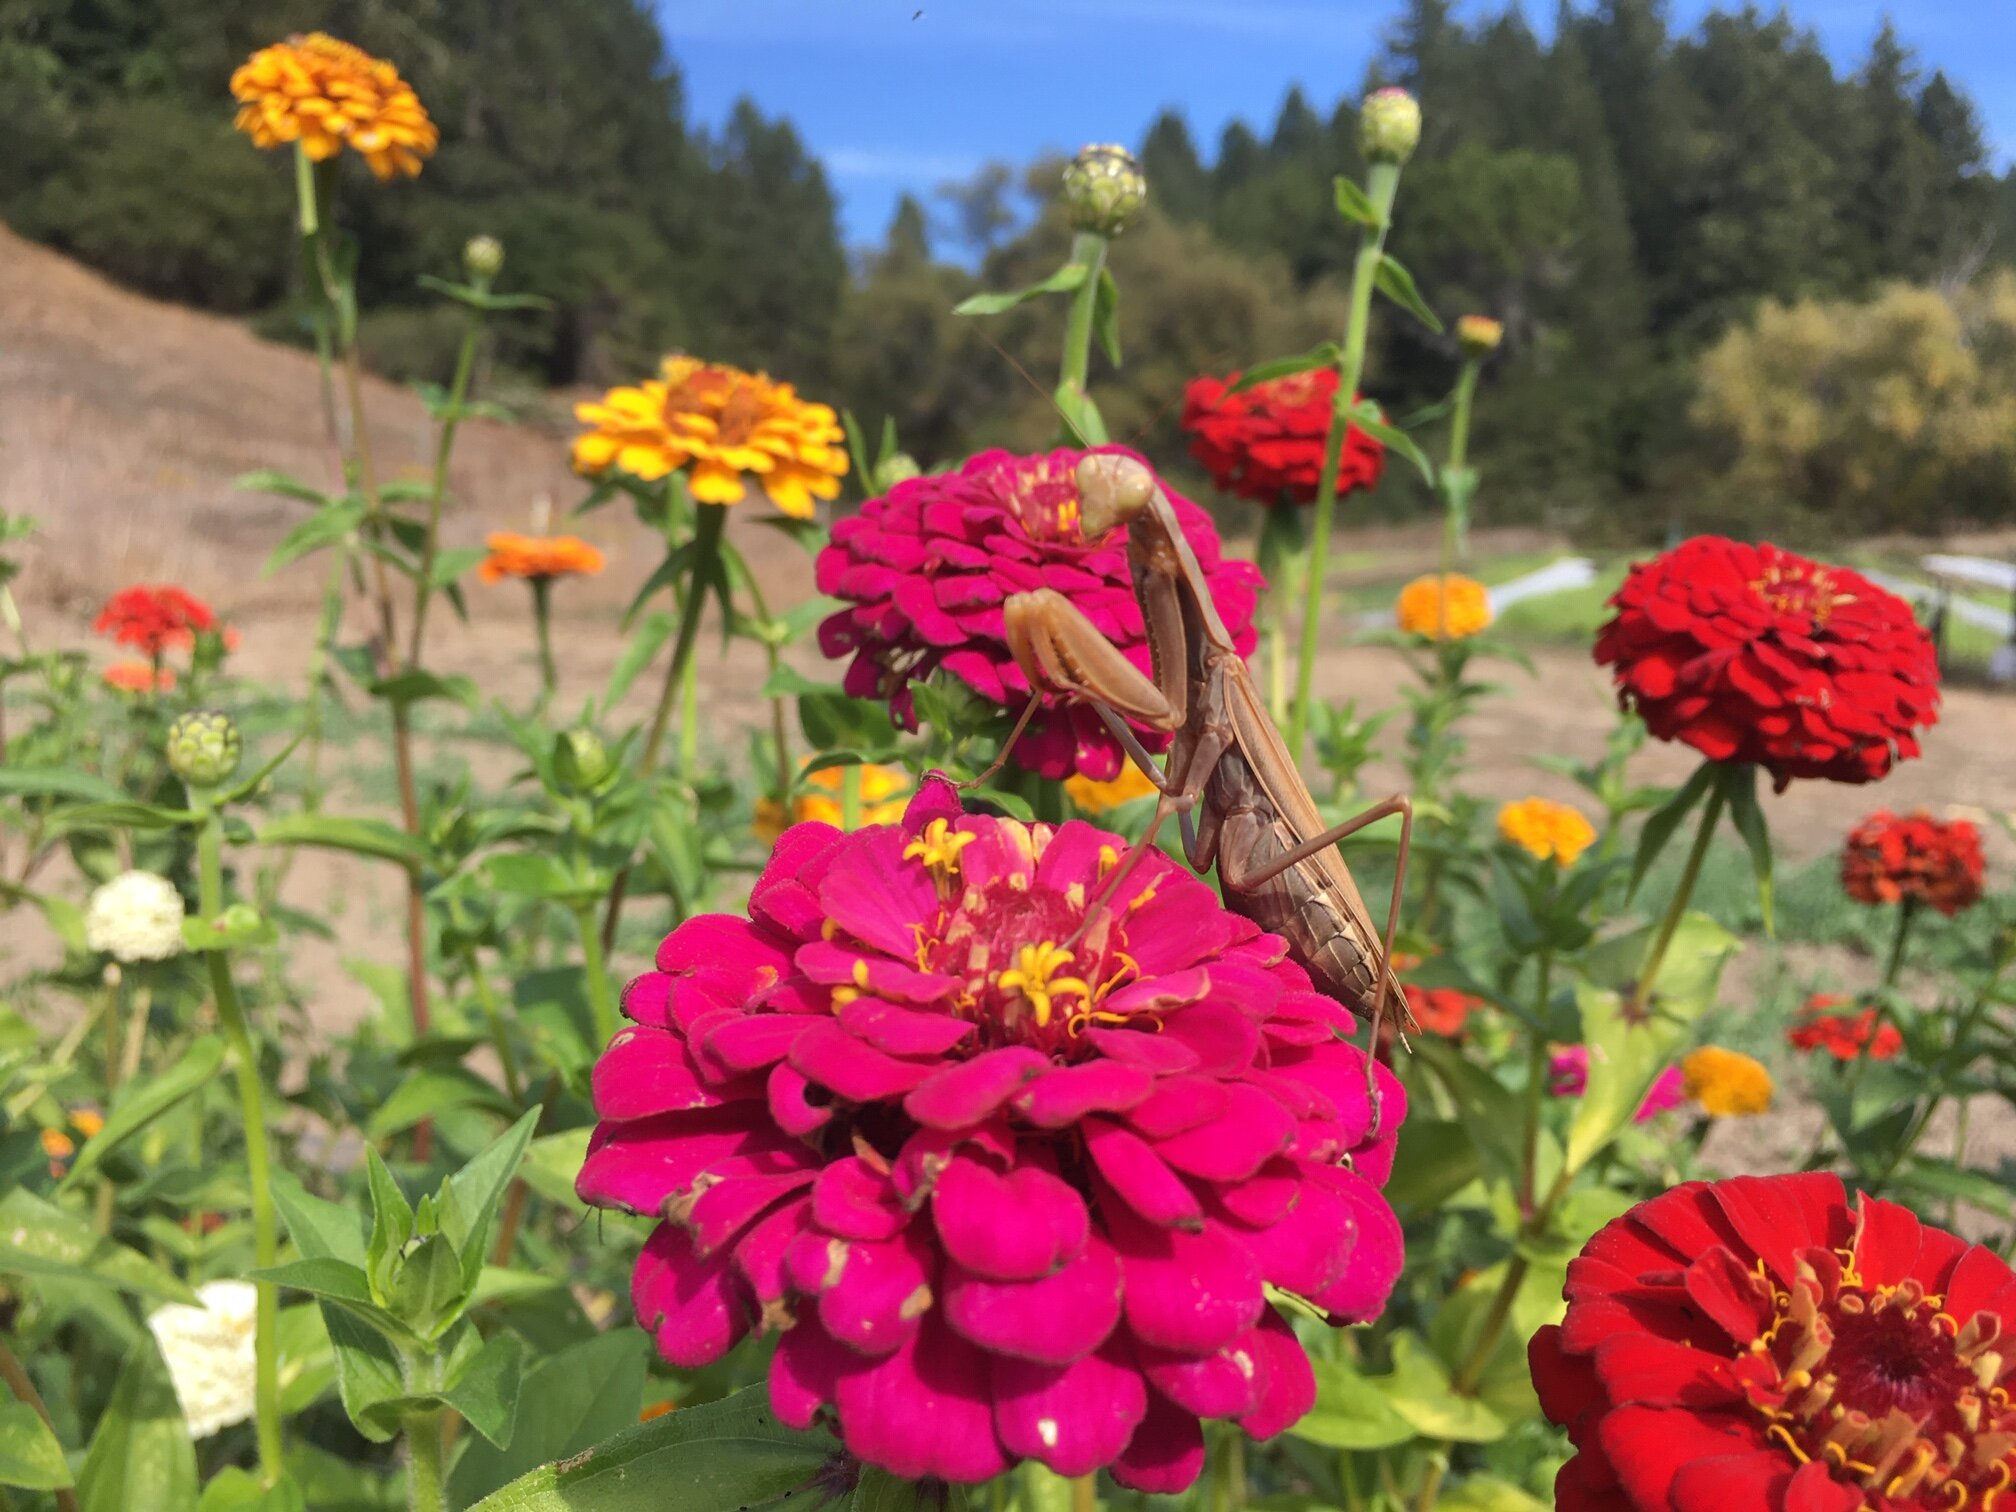 A preying mantis hunts cucumber beetles on the zinnias